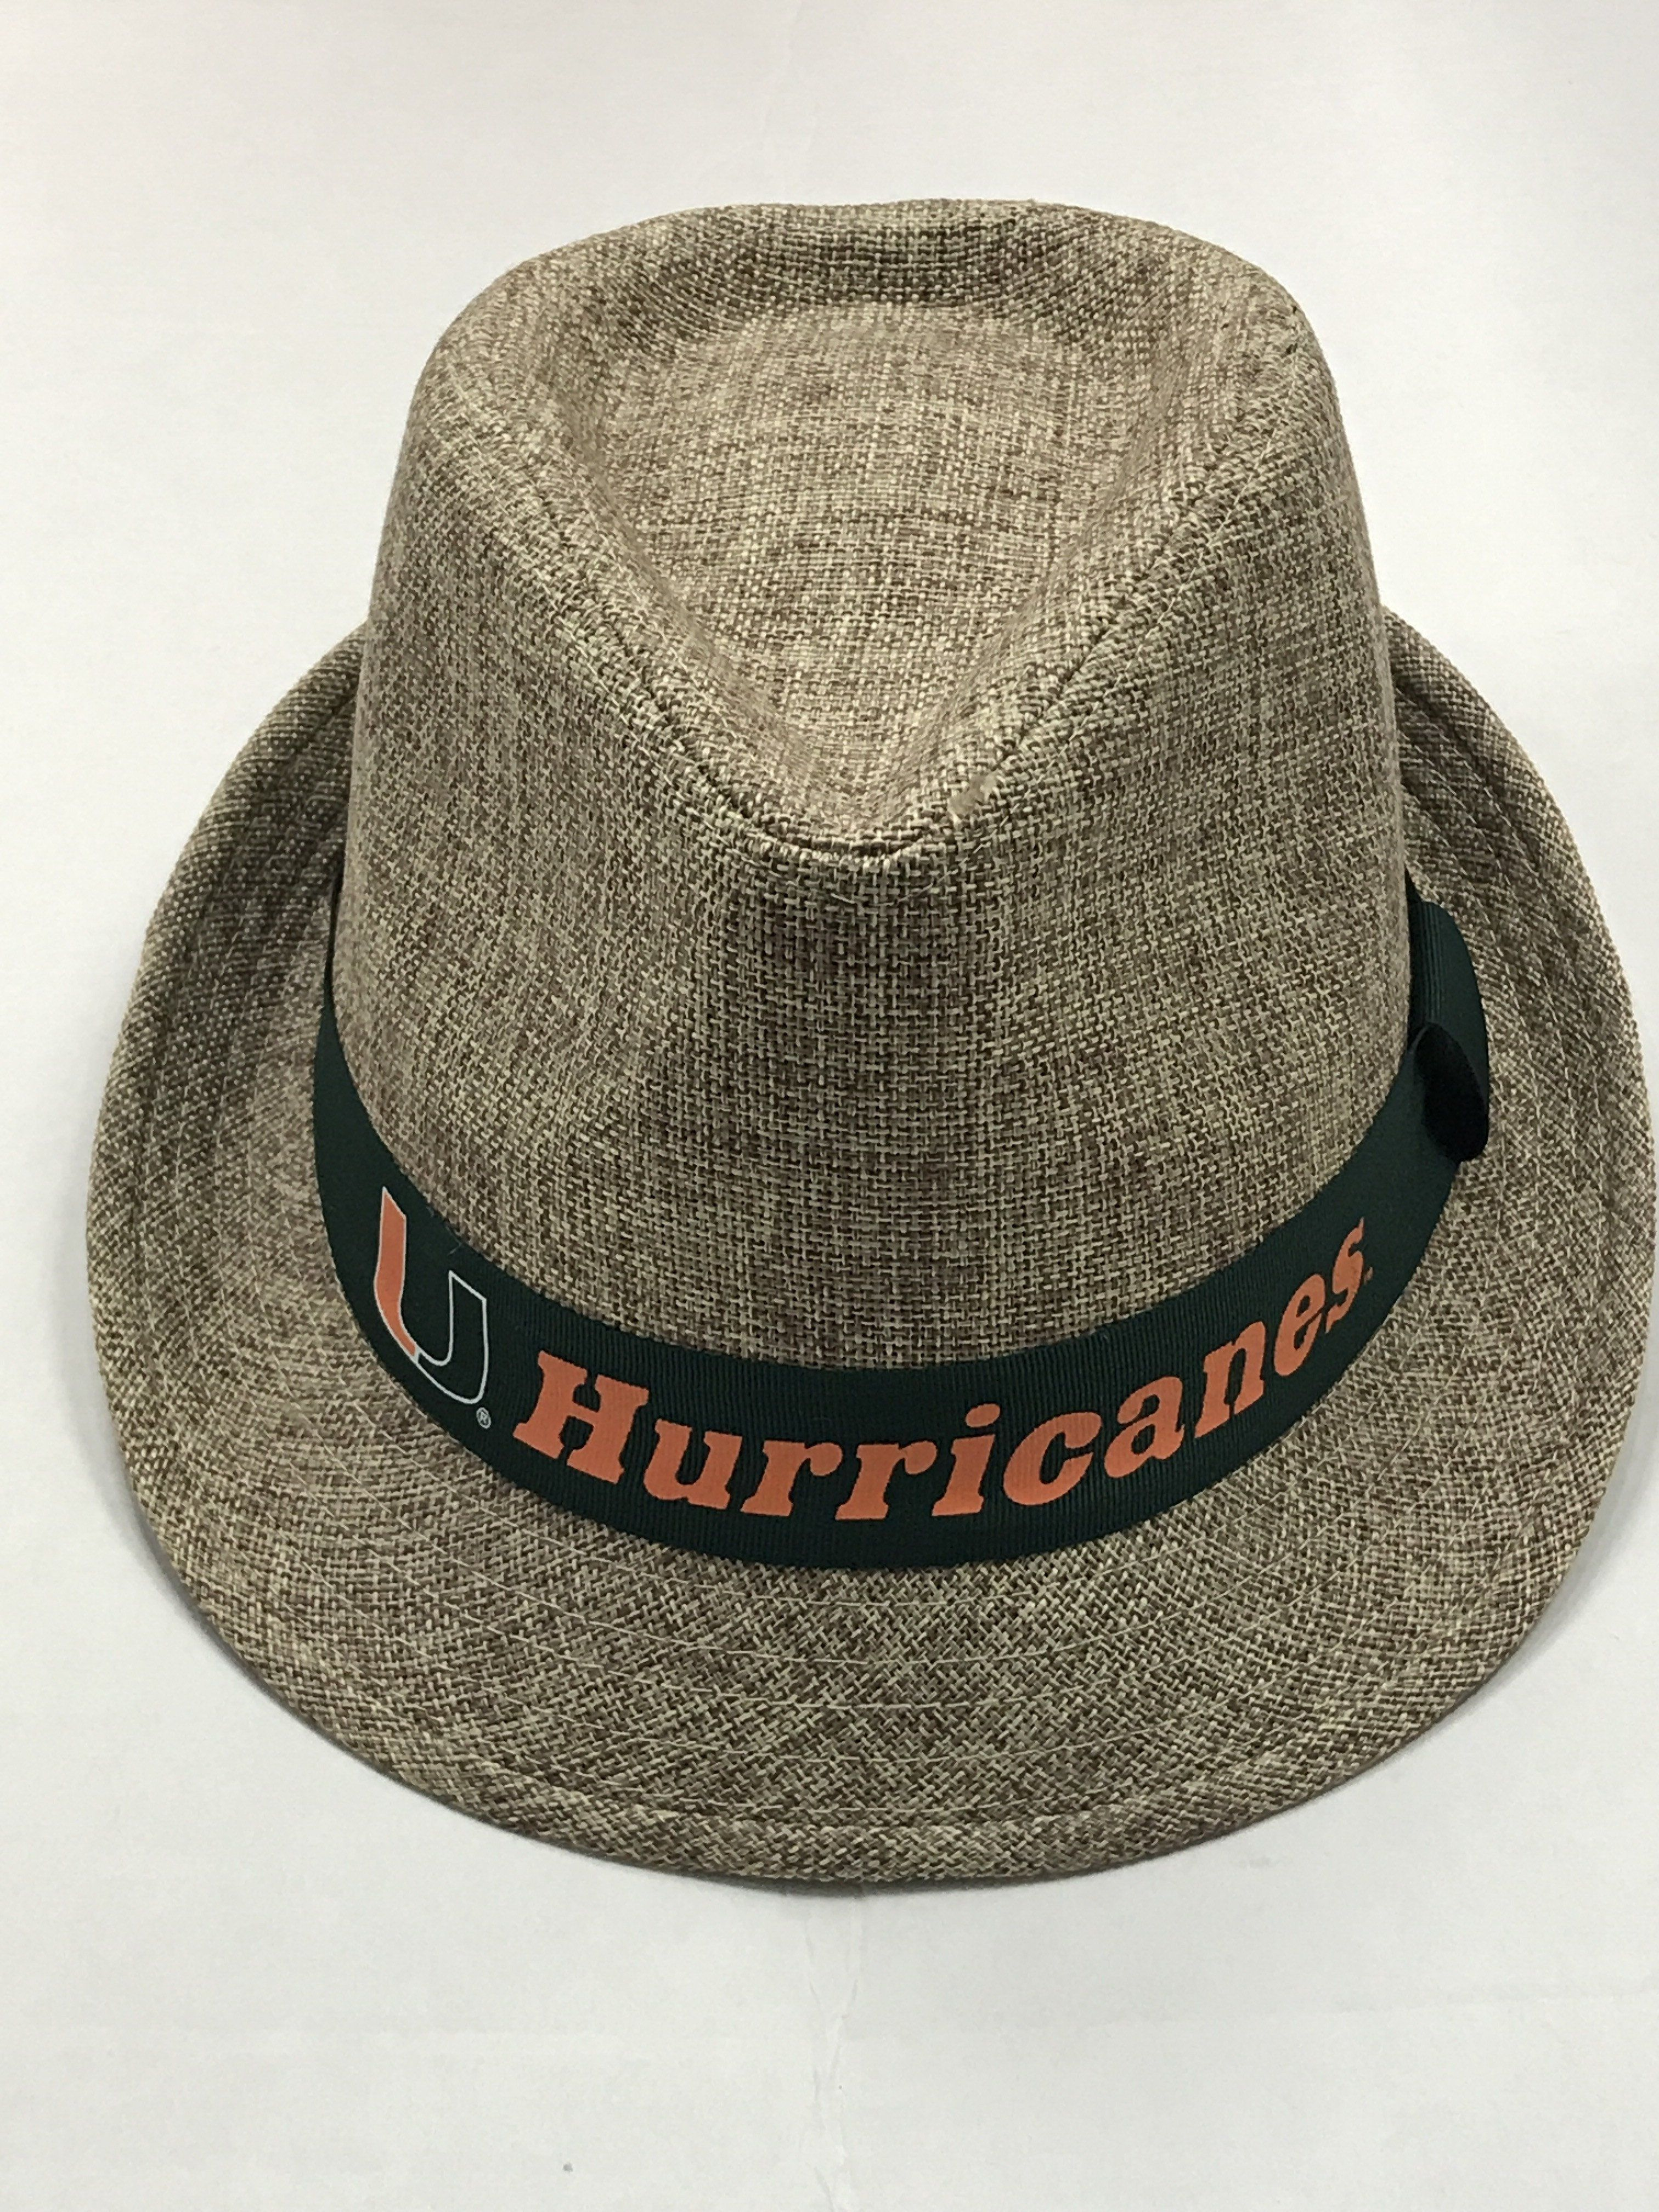 56a6d1cc Miami Hurricanes Top of the World First Class Fedora Hat   CanesWear ...